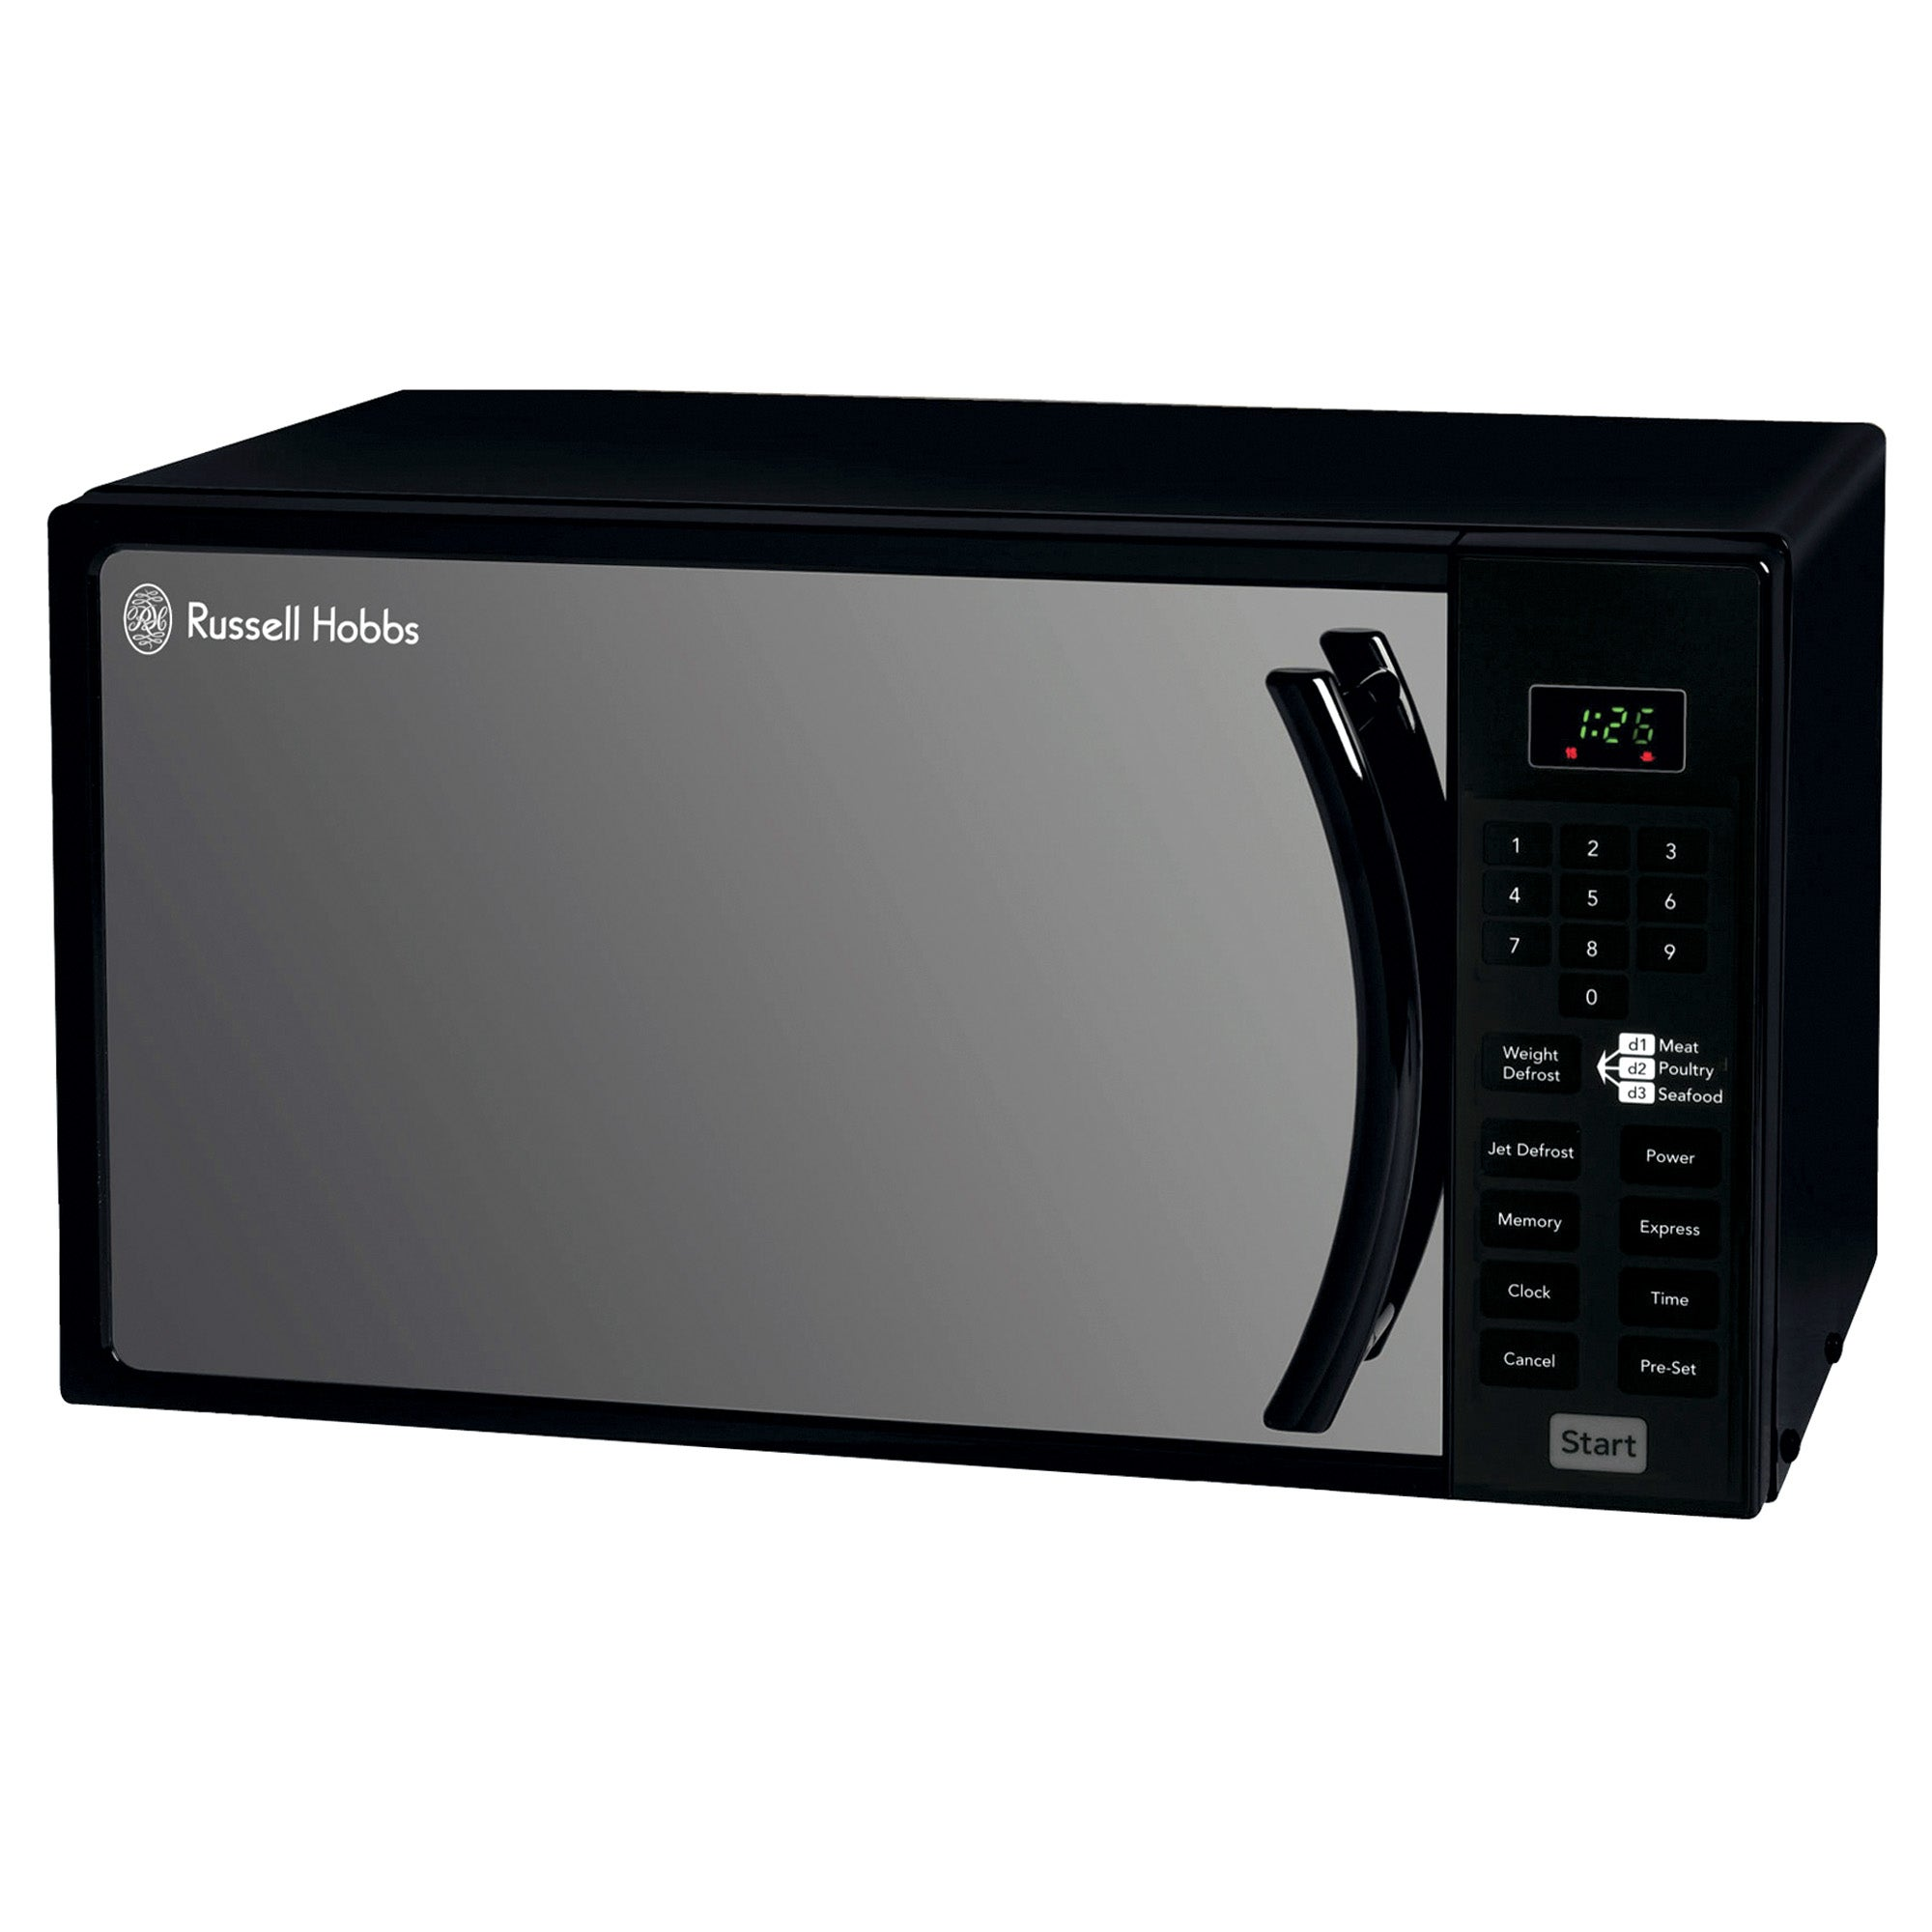 Russell Hobbs Touch Control Microwave